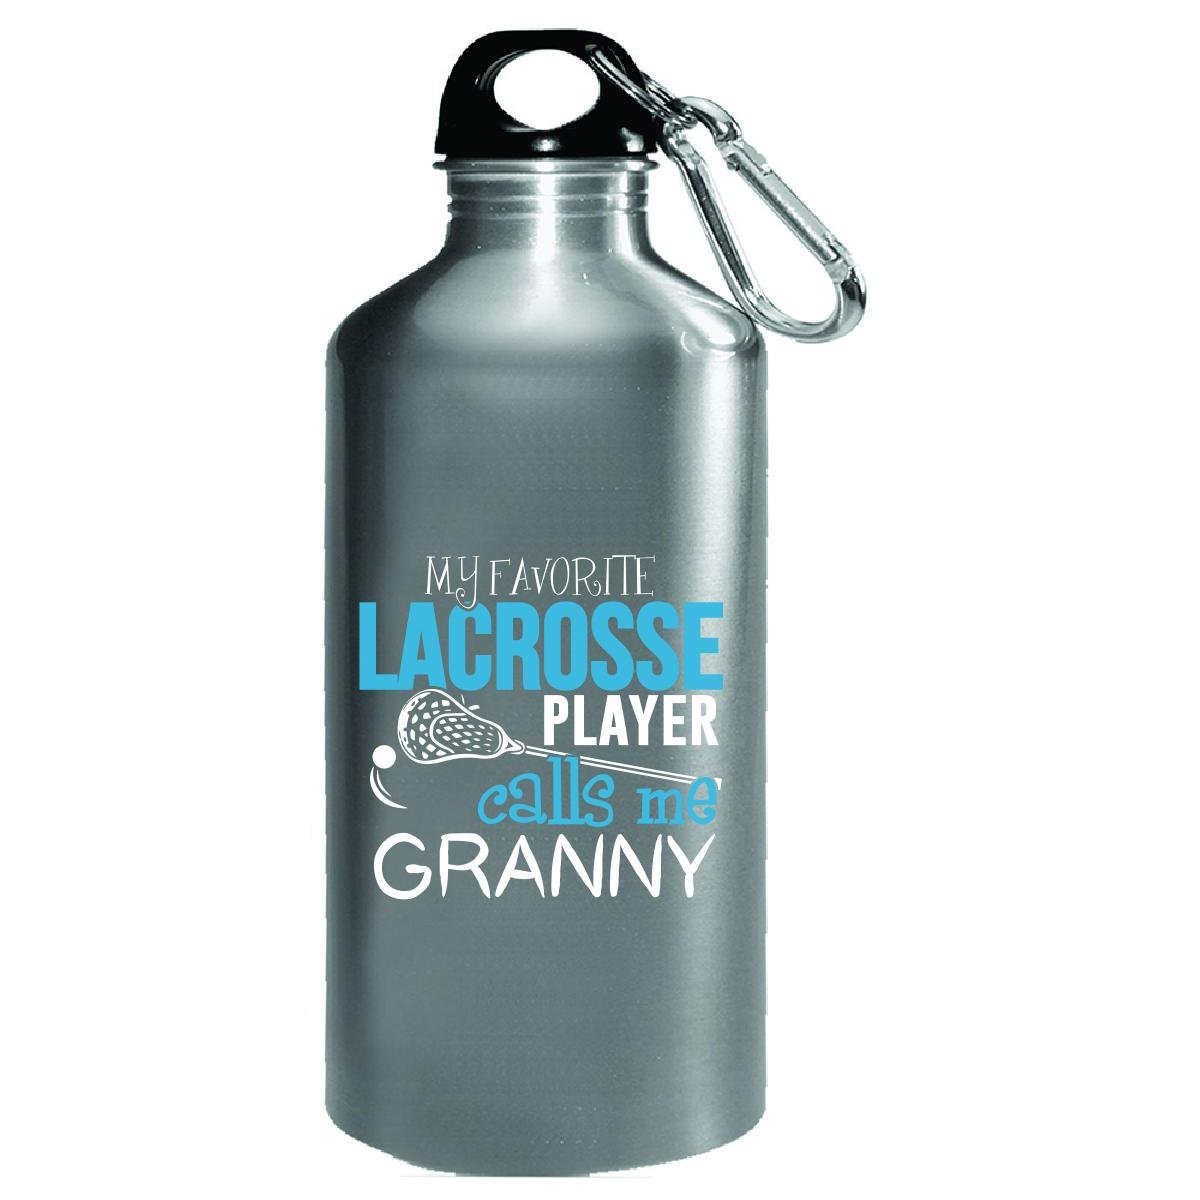 My Favorite Lacrosse Player Calls Me Granny - Water Bottle